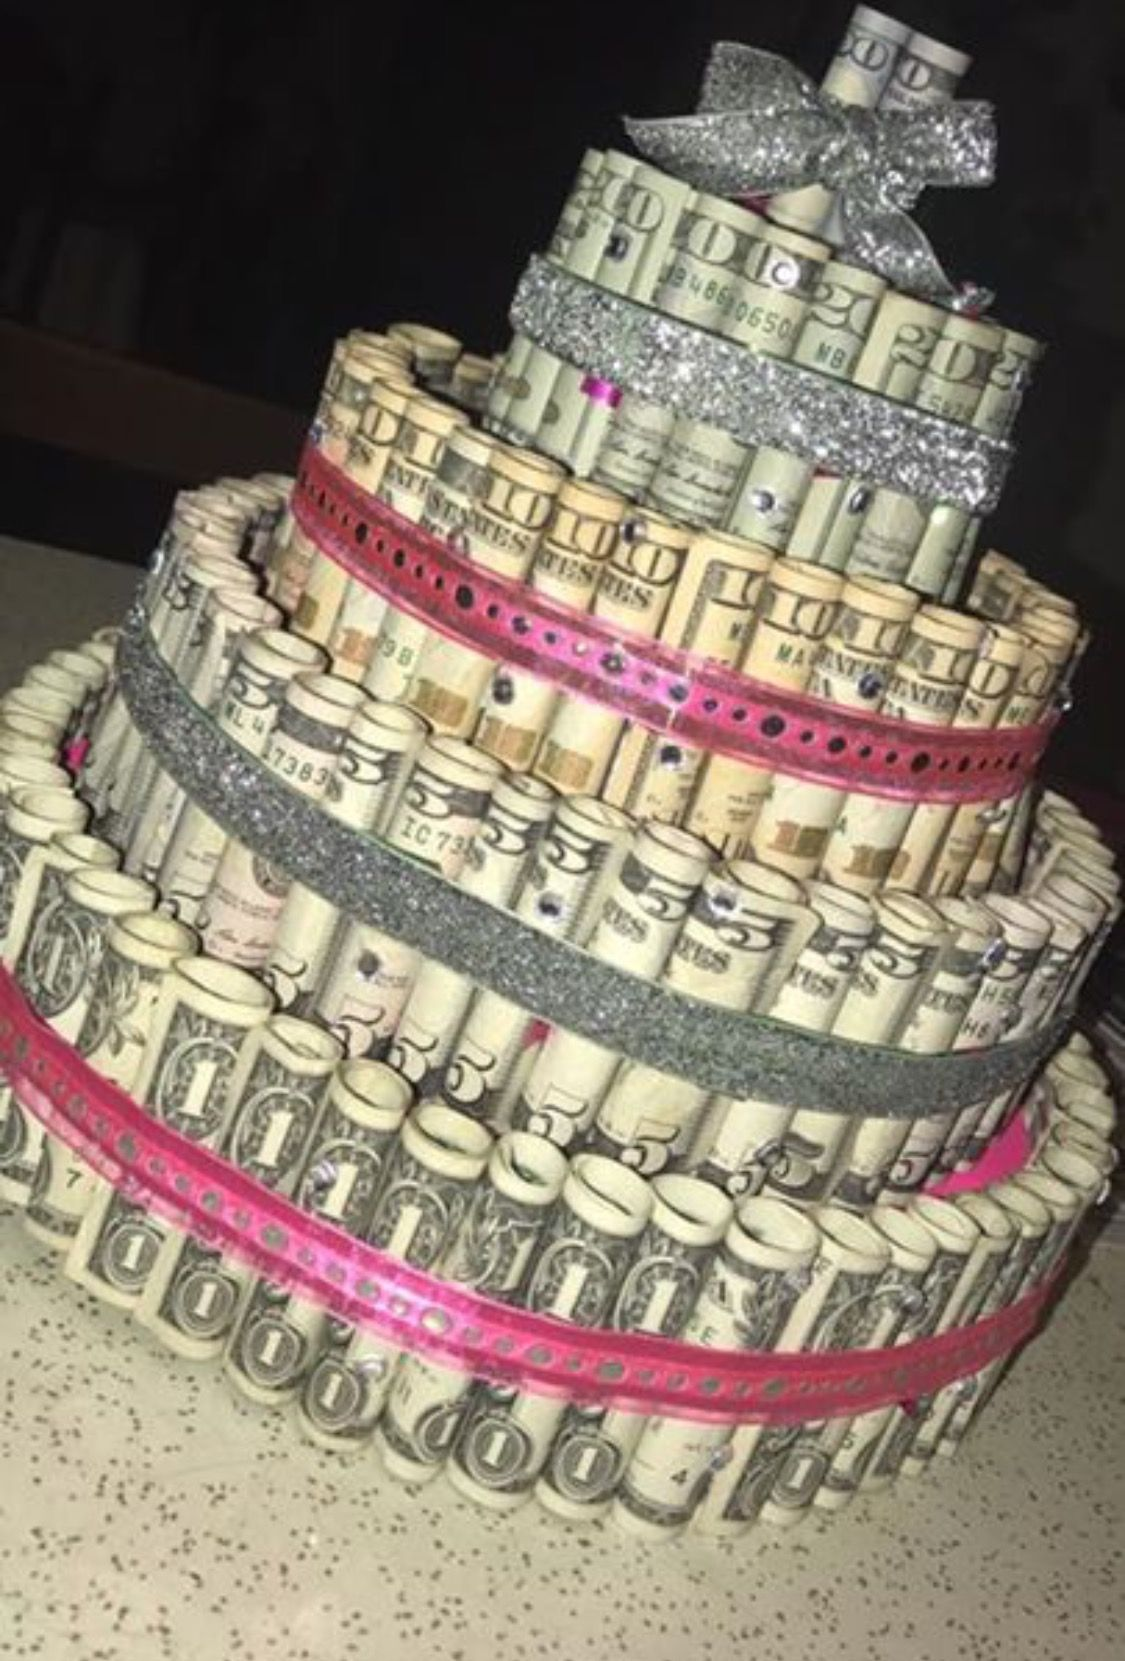 Money Birthday Cake Cash Money Pinterest Birthday cakes